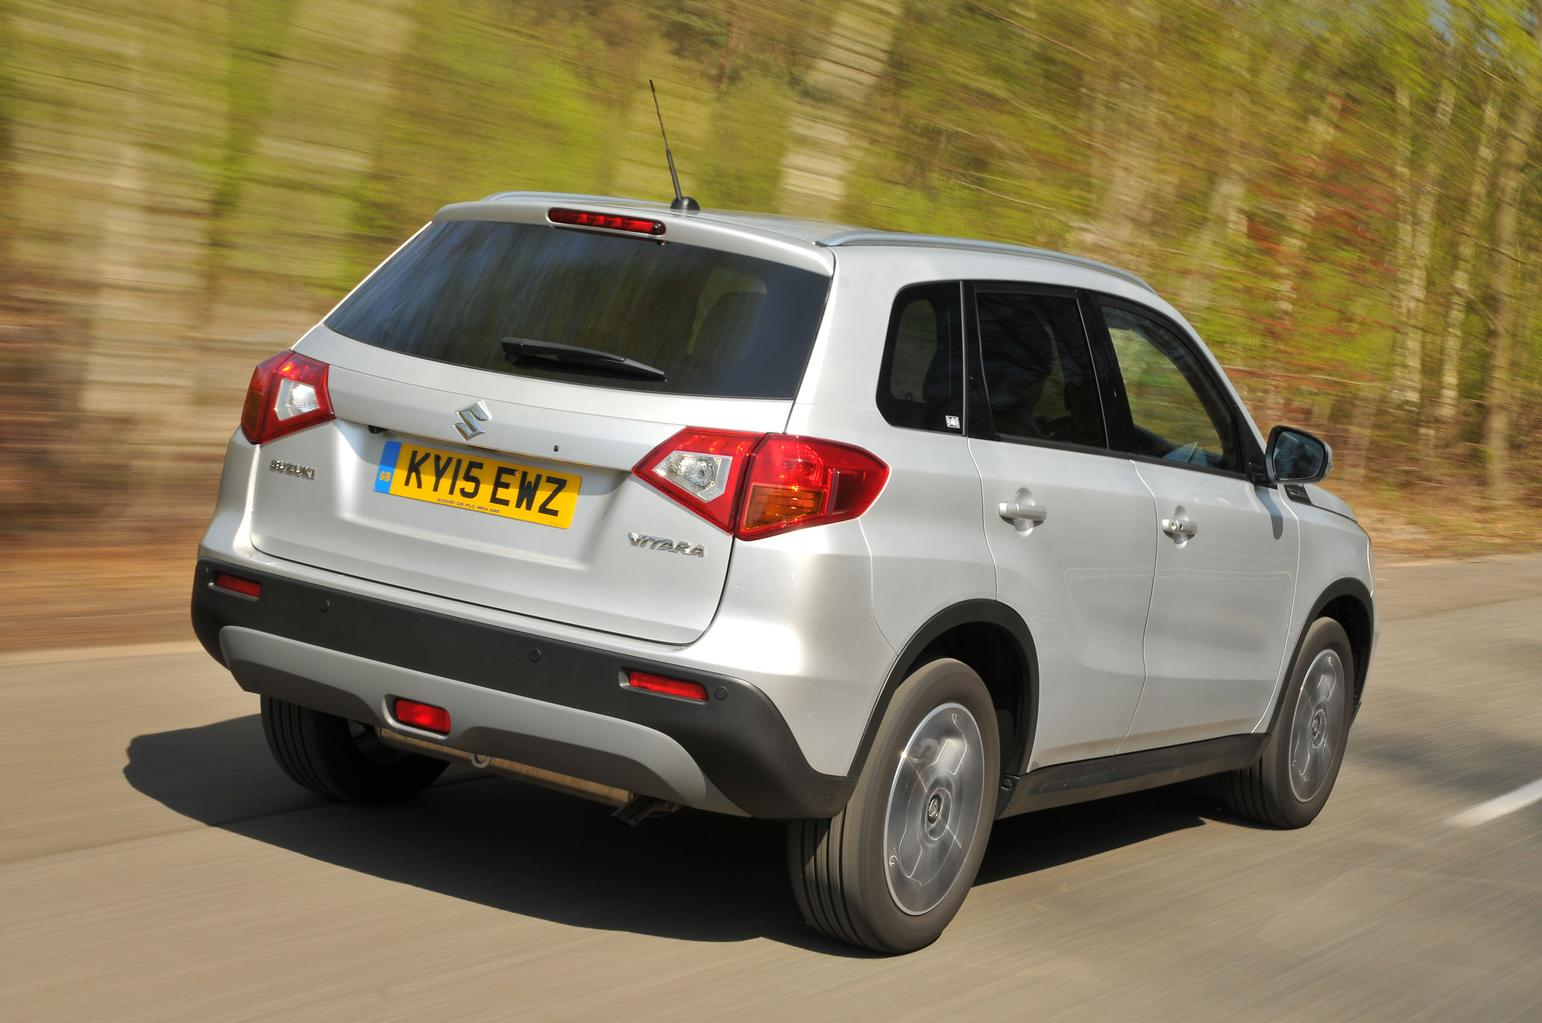 5 reasons to buy a Suzuki Vitara